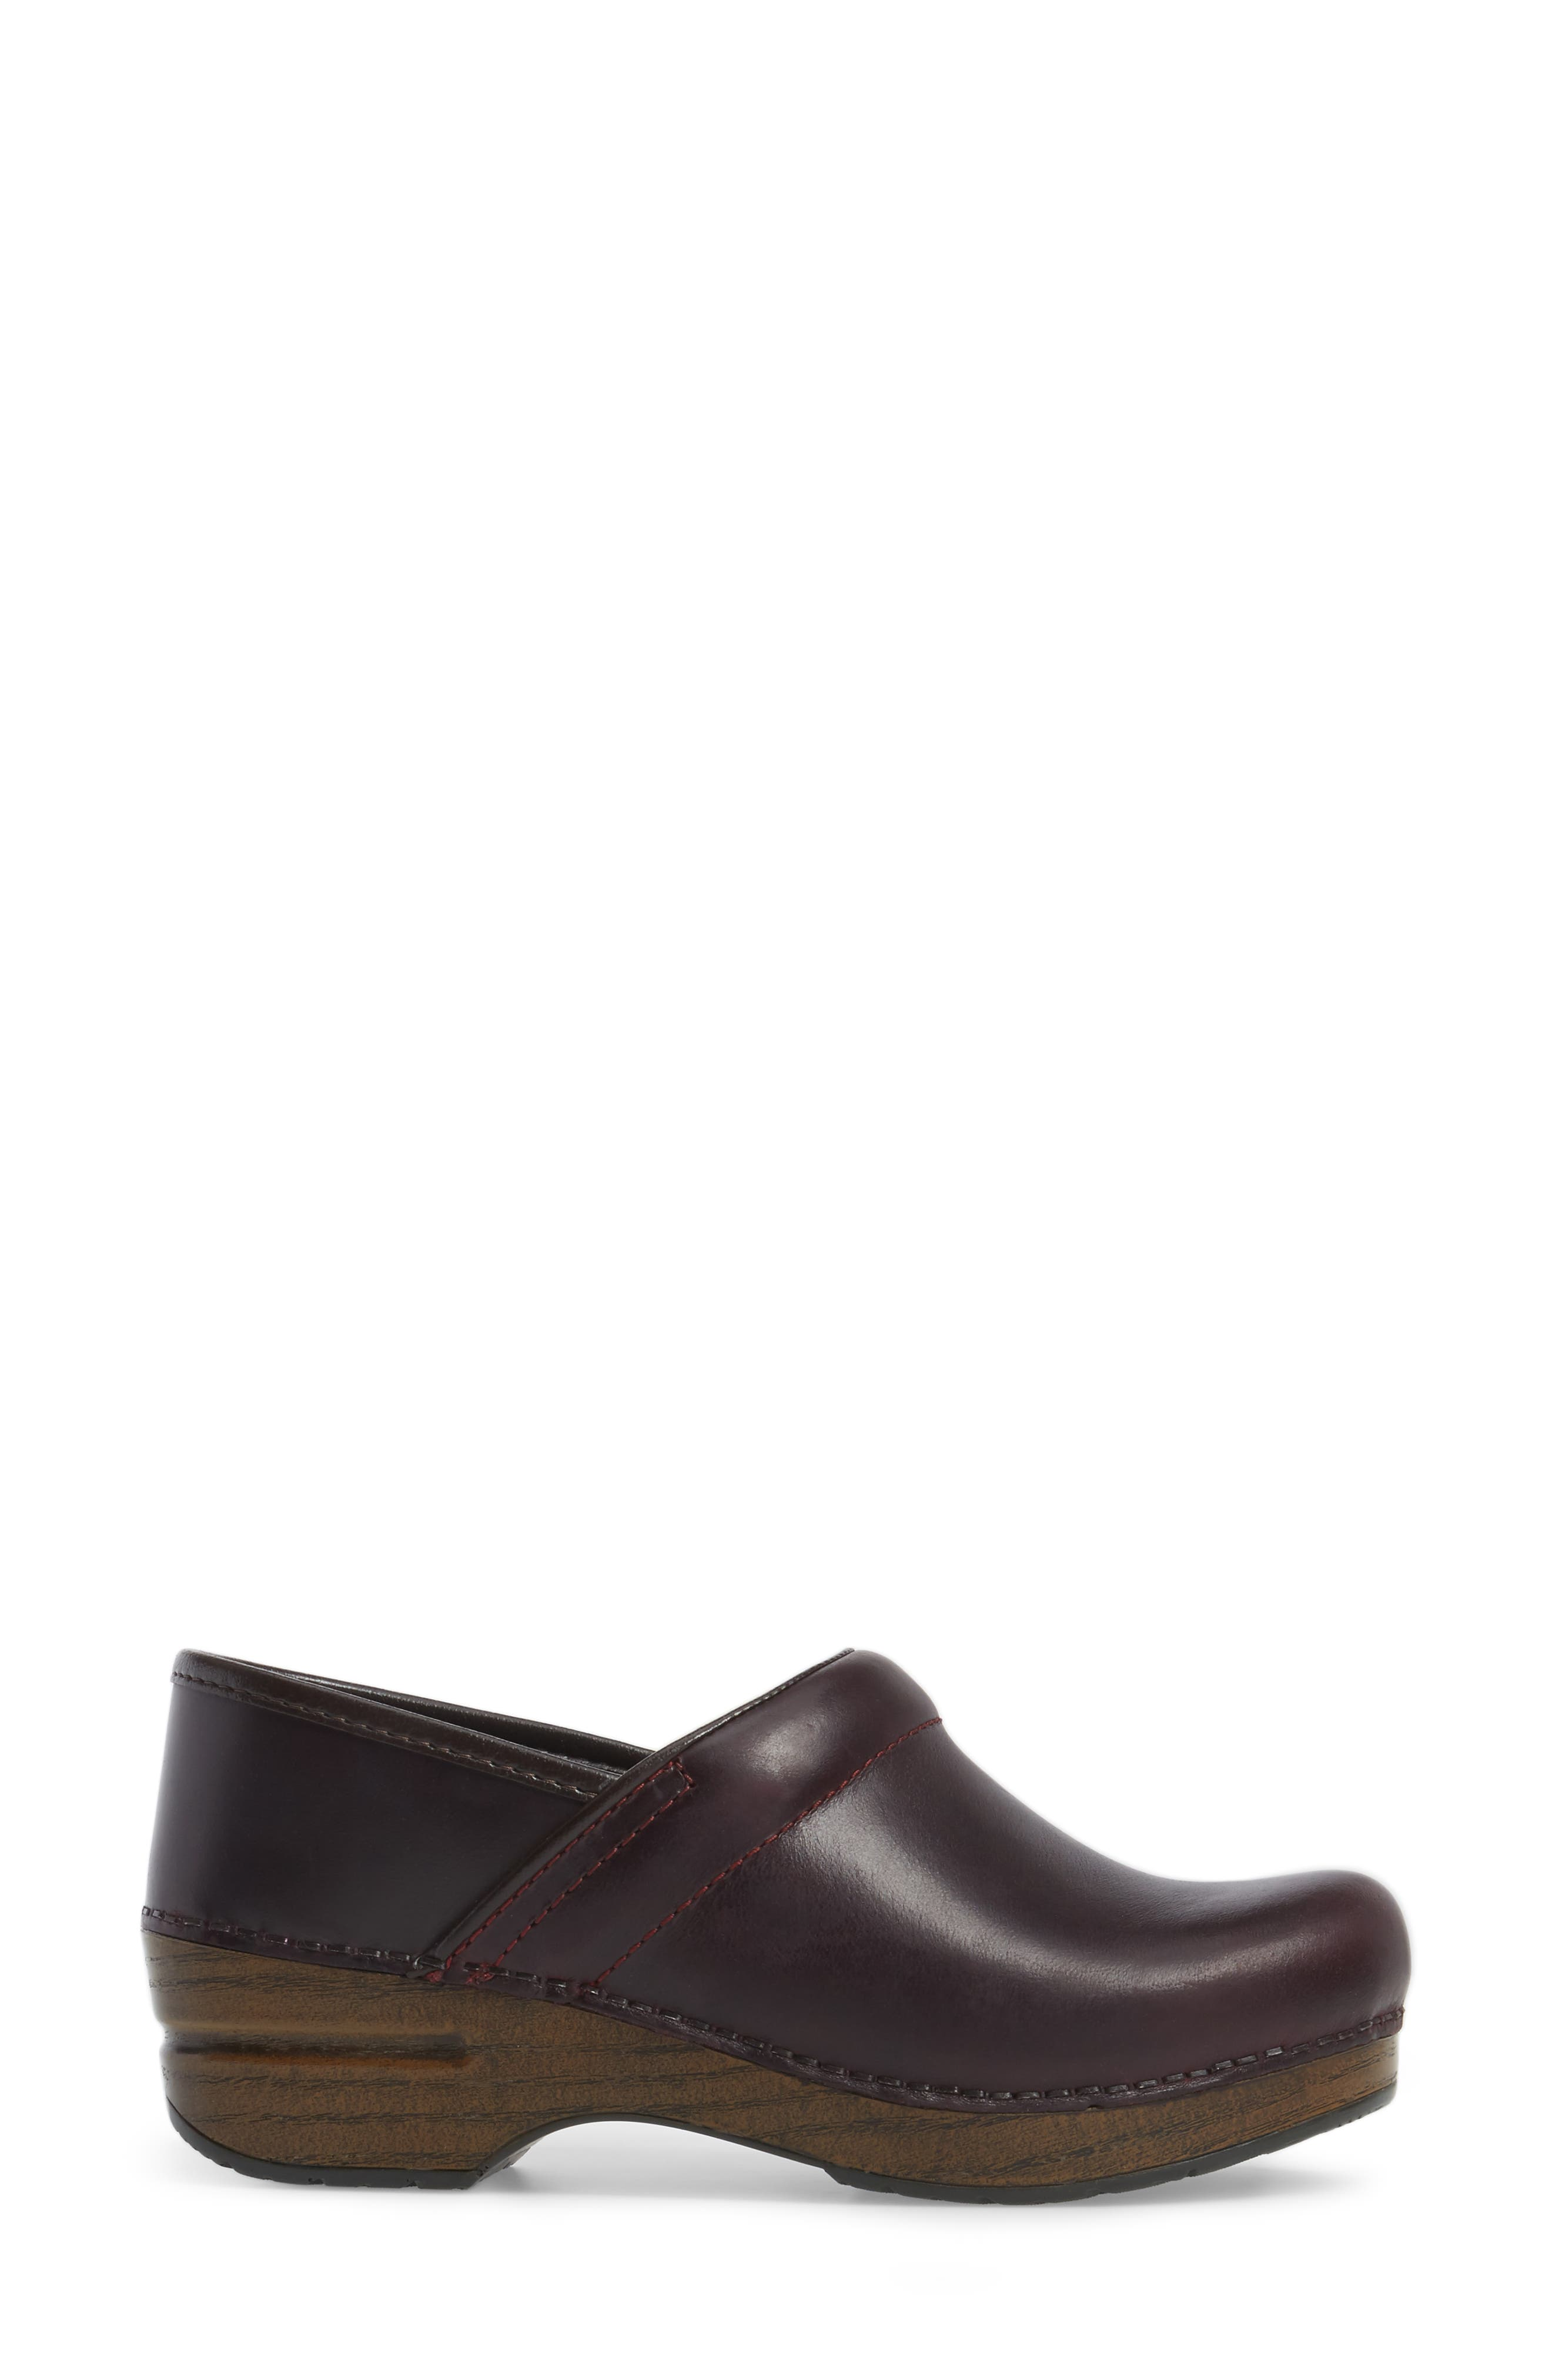 'Professional' Clog,                             Alternate thumbnail 3, color,                             Cordovan Leather